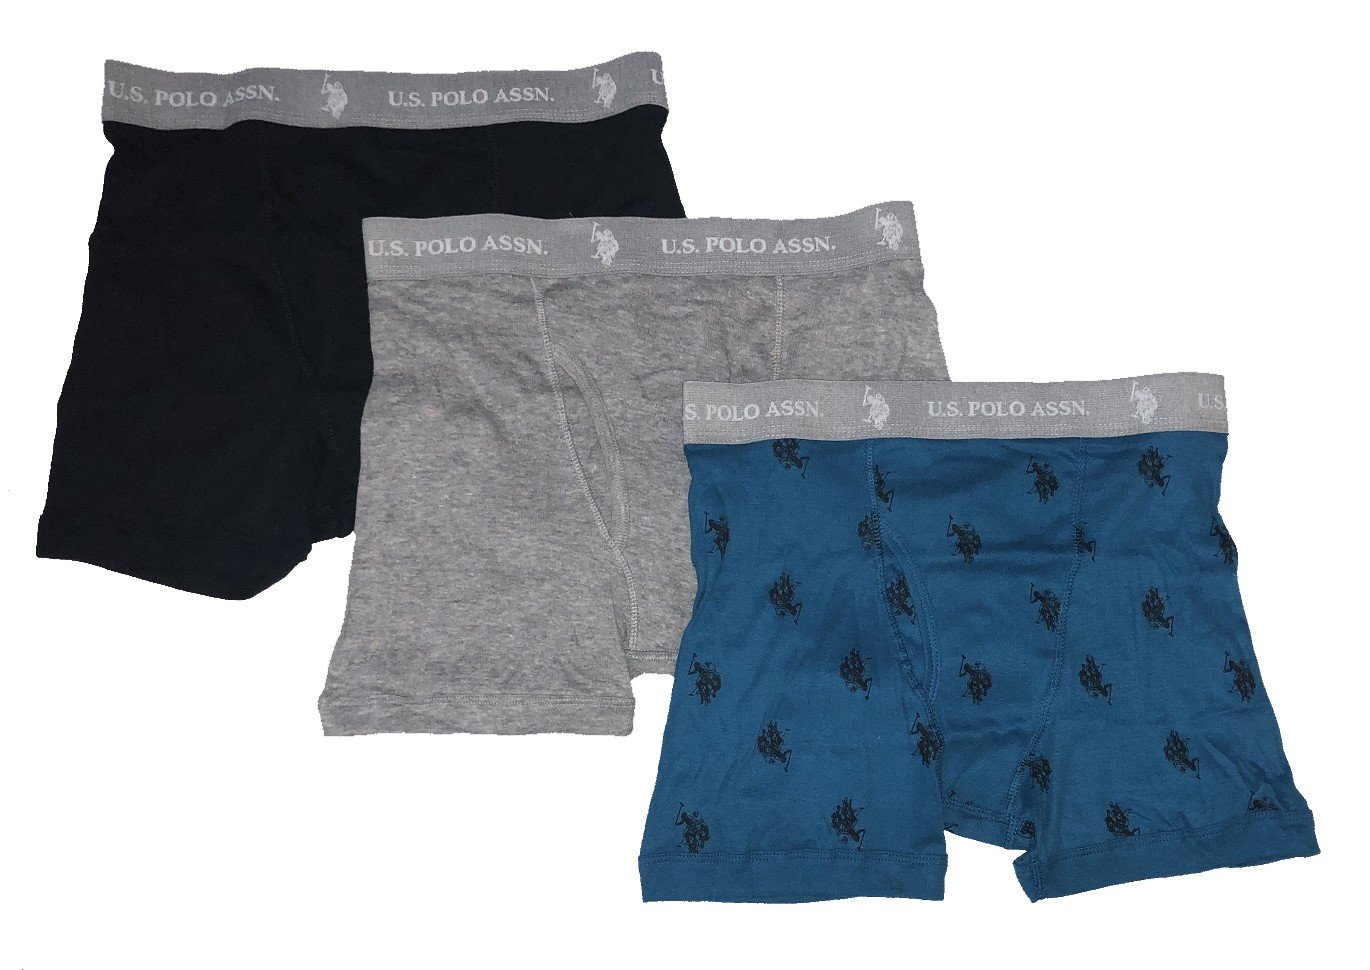 U.S. Polo Assn. UNDERWEAR メンズ X-Large|Black/ Heather Grey/ Turquoise Black/ Heather Grey/ Turquoise X-Large B079SNB9VY